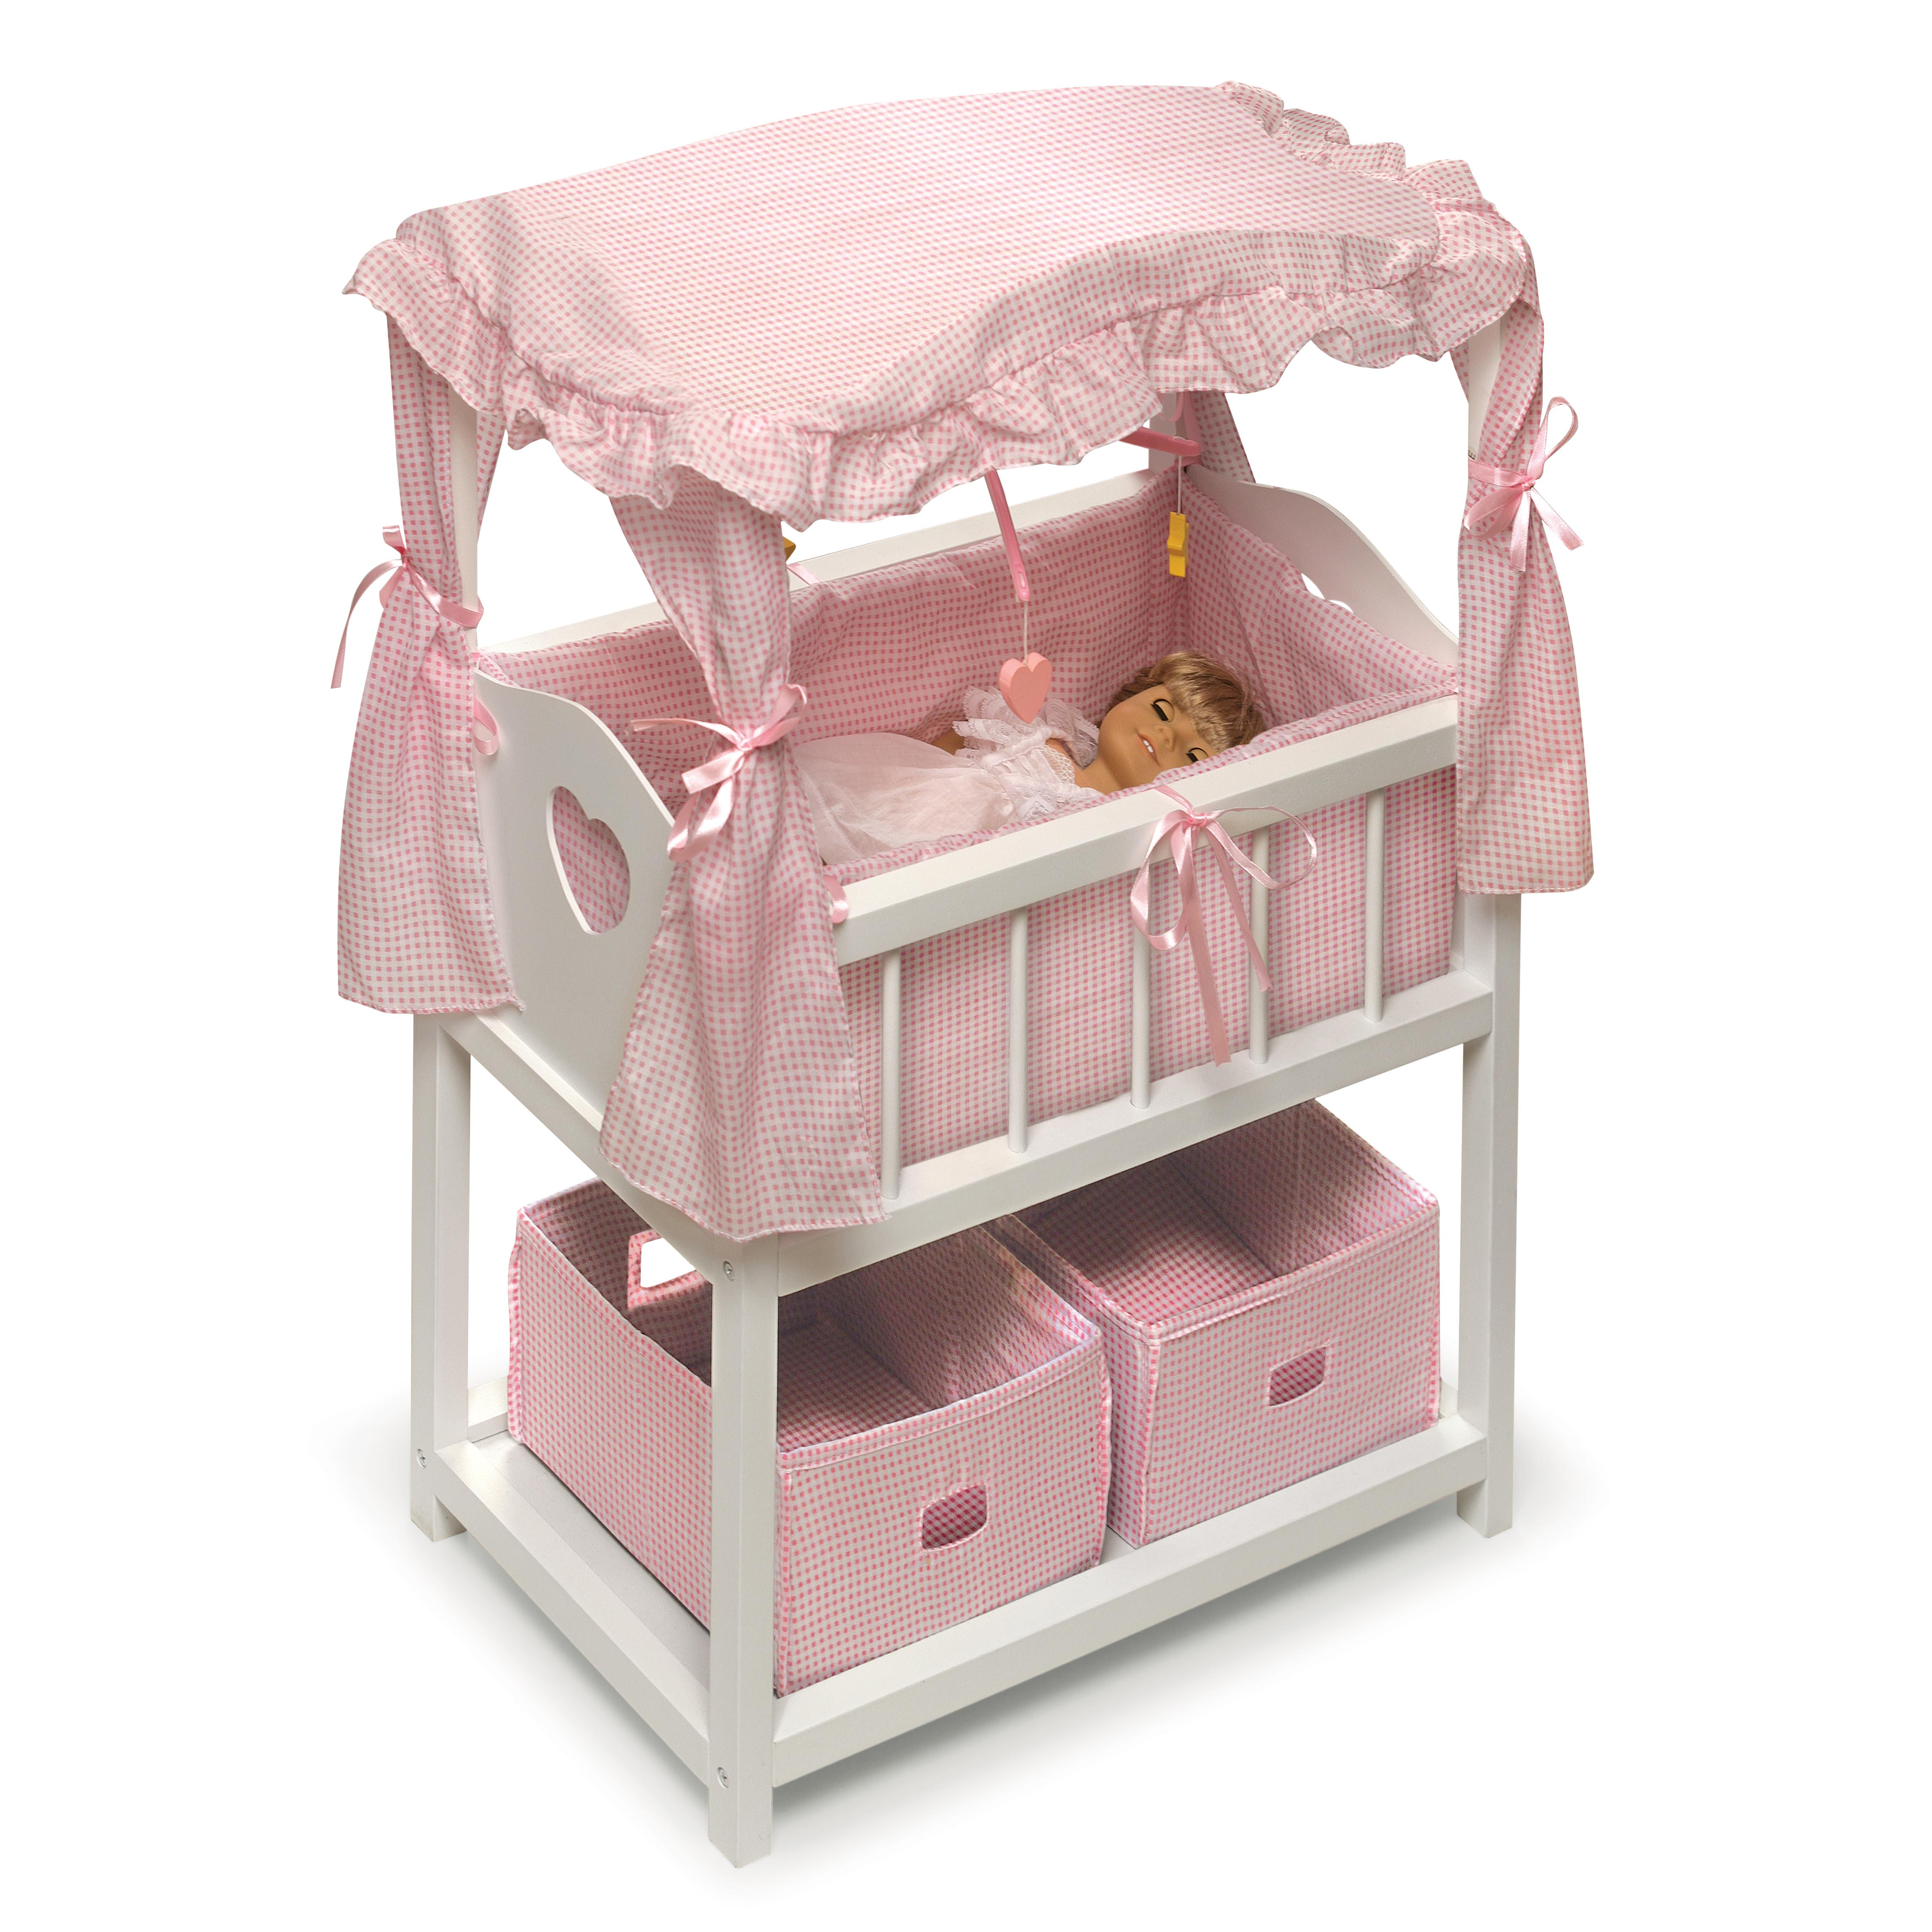 "Badger Basket Canopy Doll Crib with Baskets & Mobiles - Fits Most 18"" Dolls & My Life As"